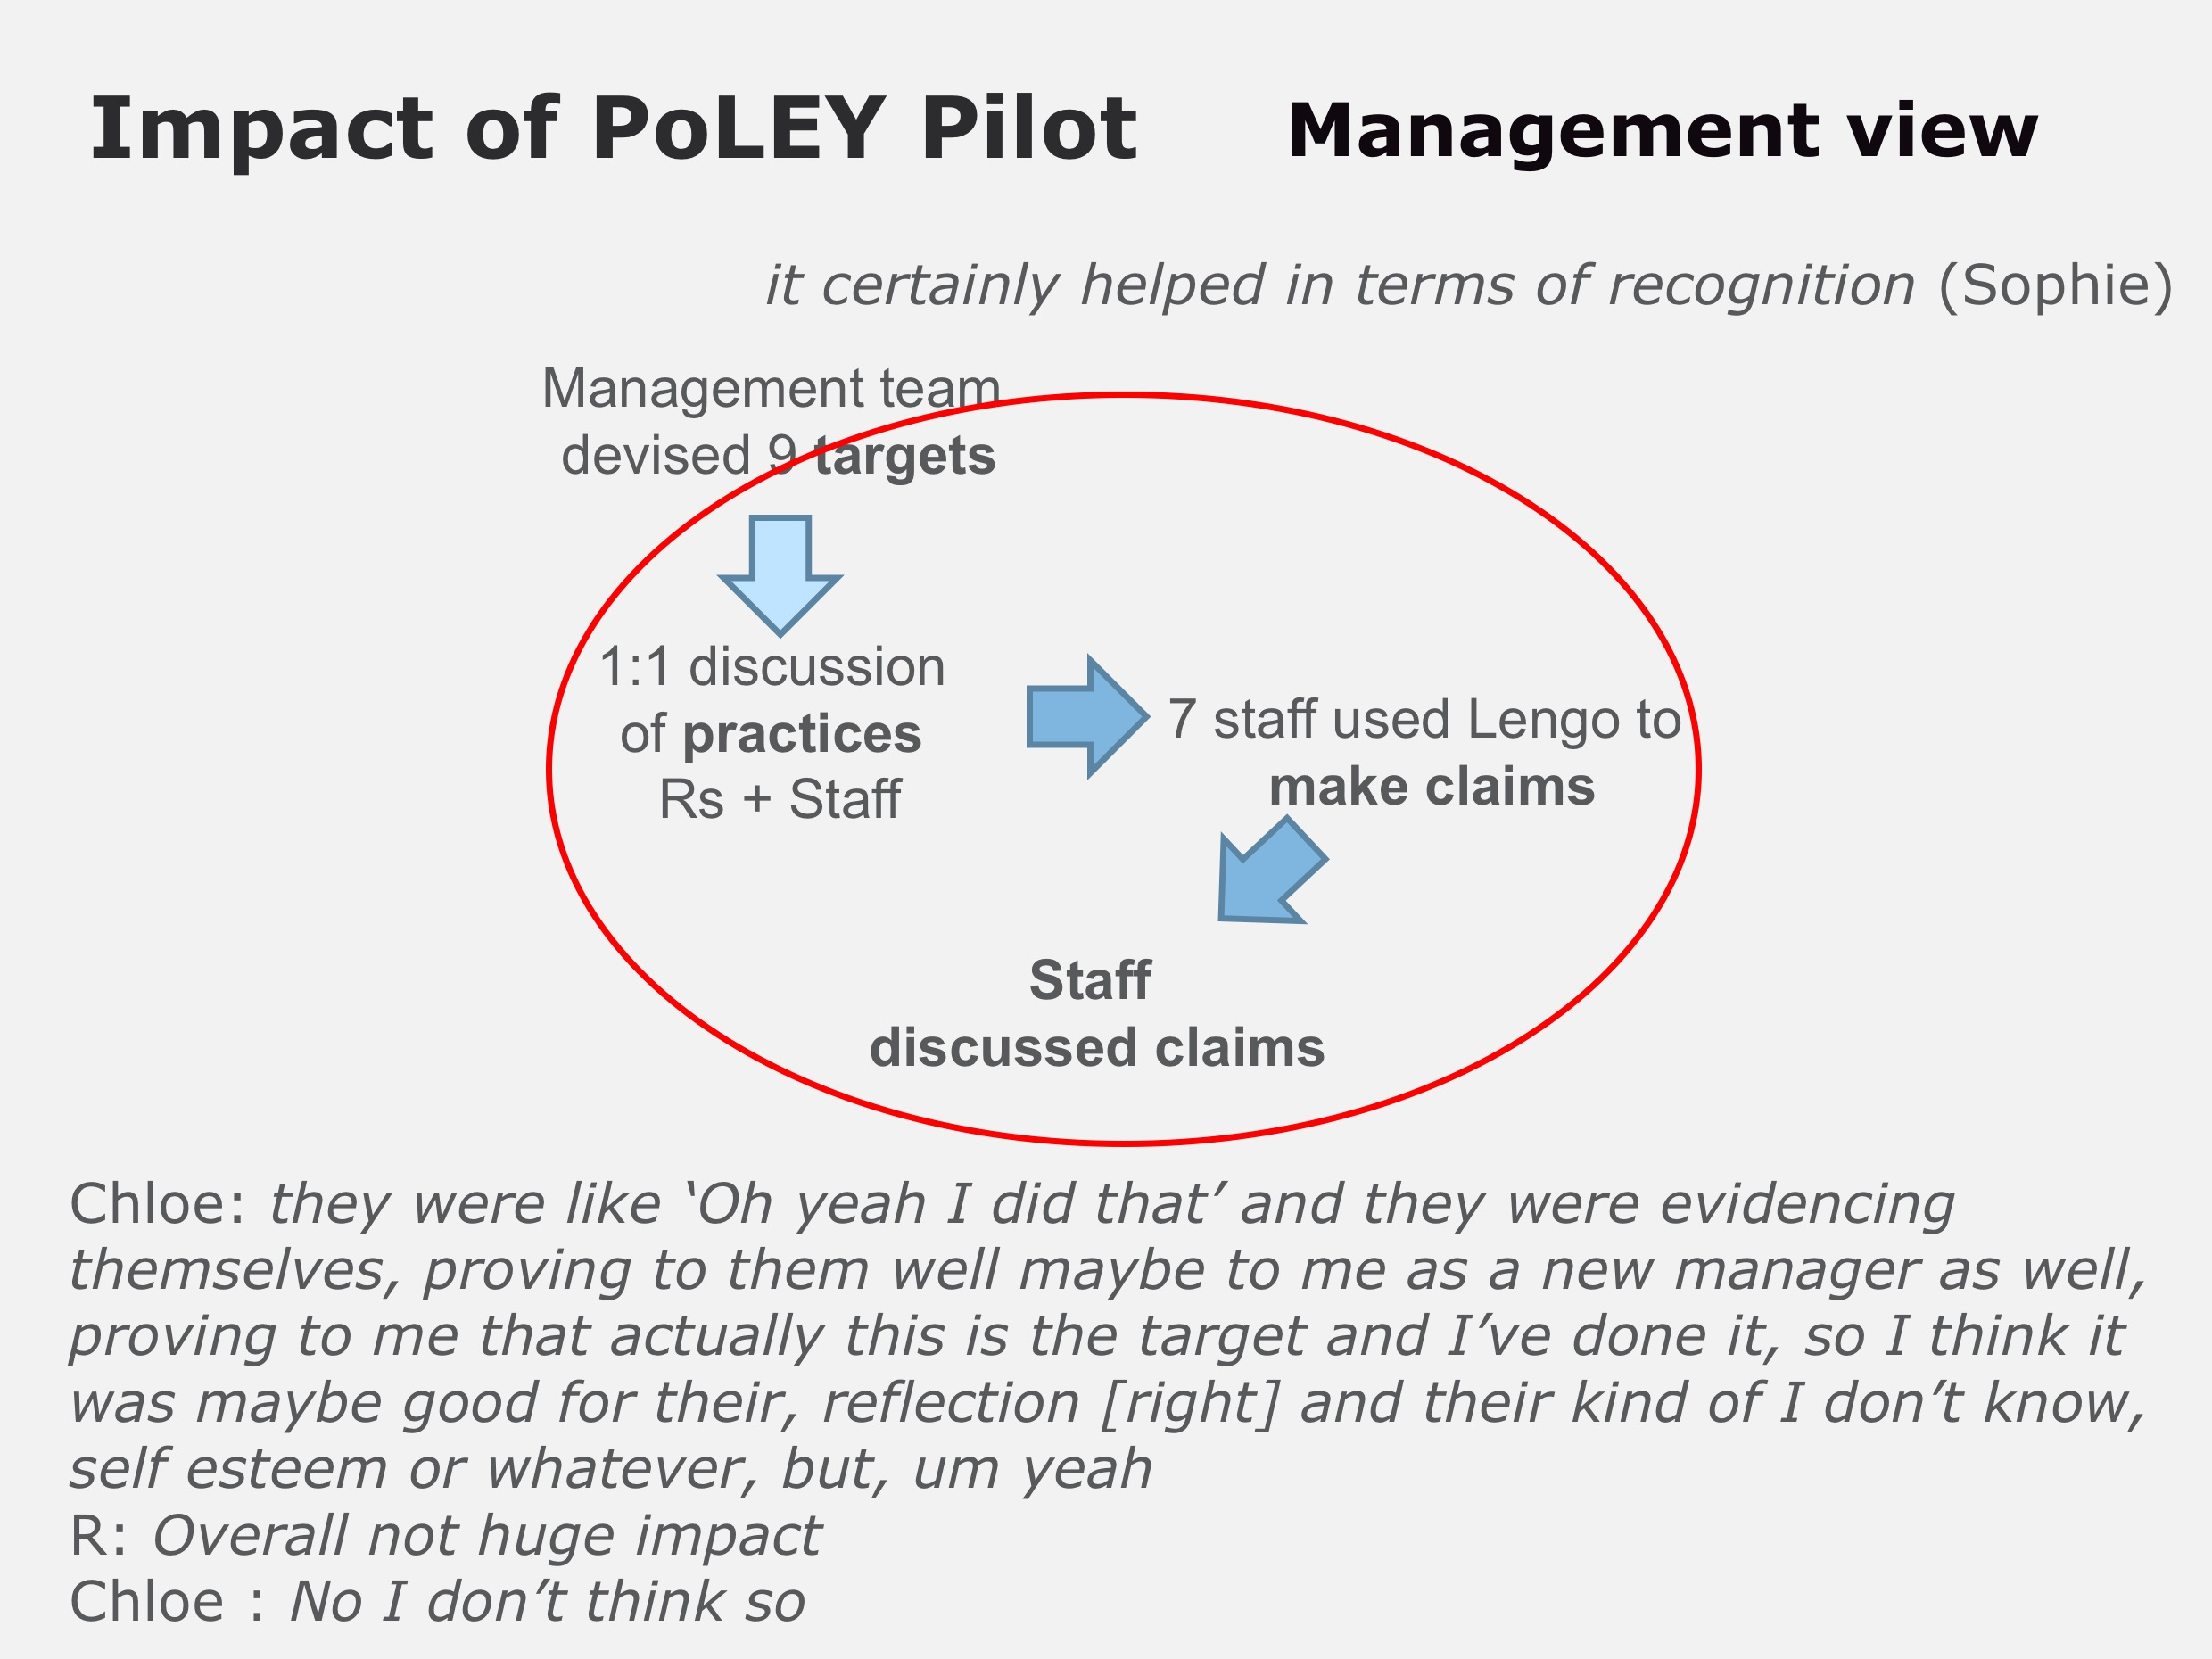 PoLEY Pilot management views